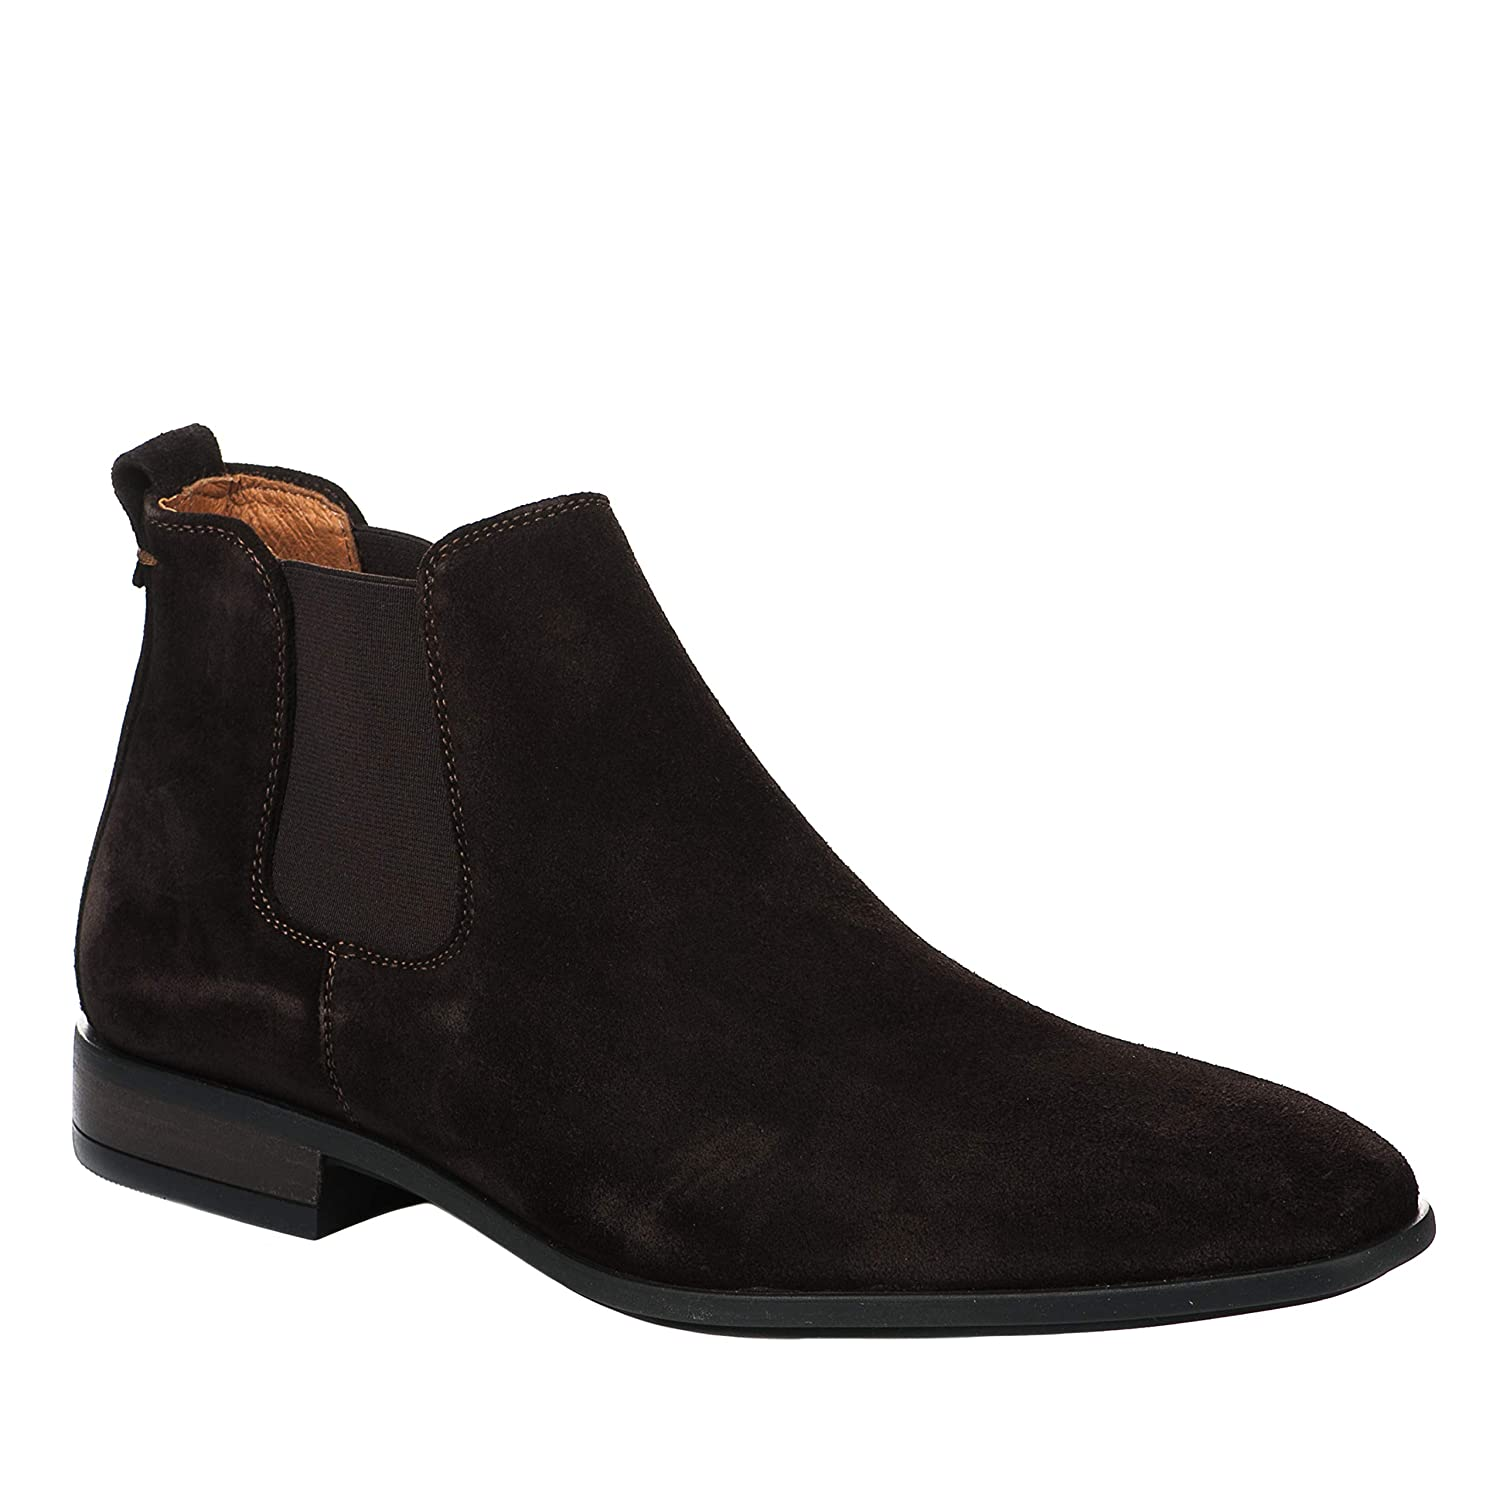 First Et Chaussures Homme Marron Collective Sacs Boots rT0qXgr